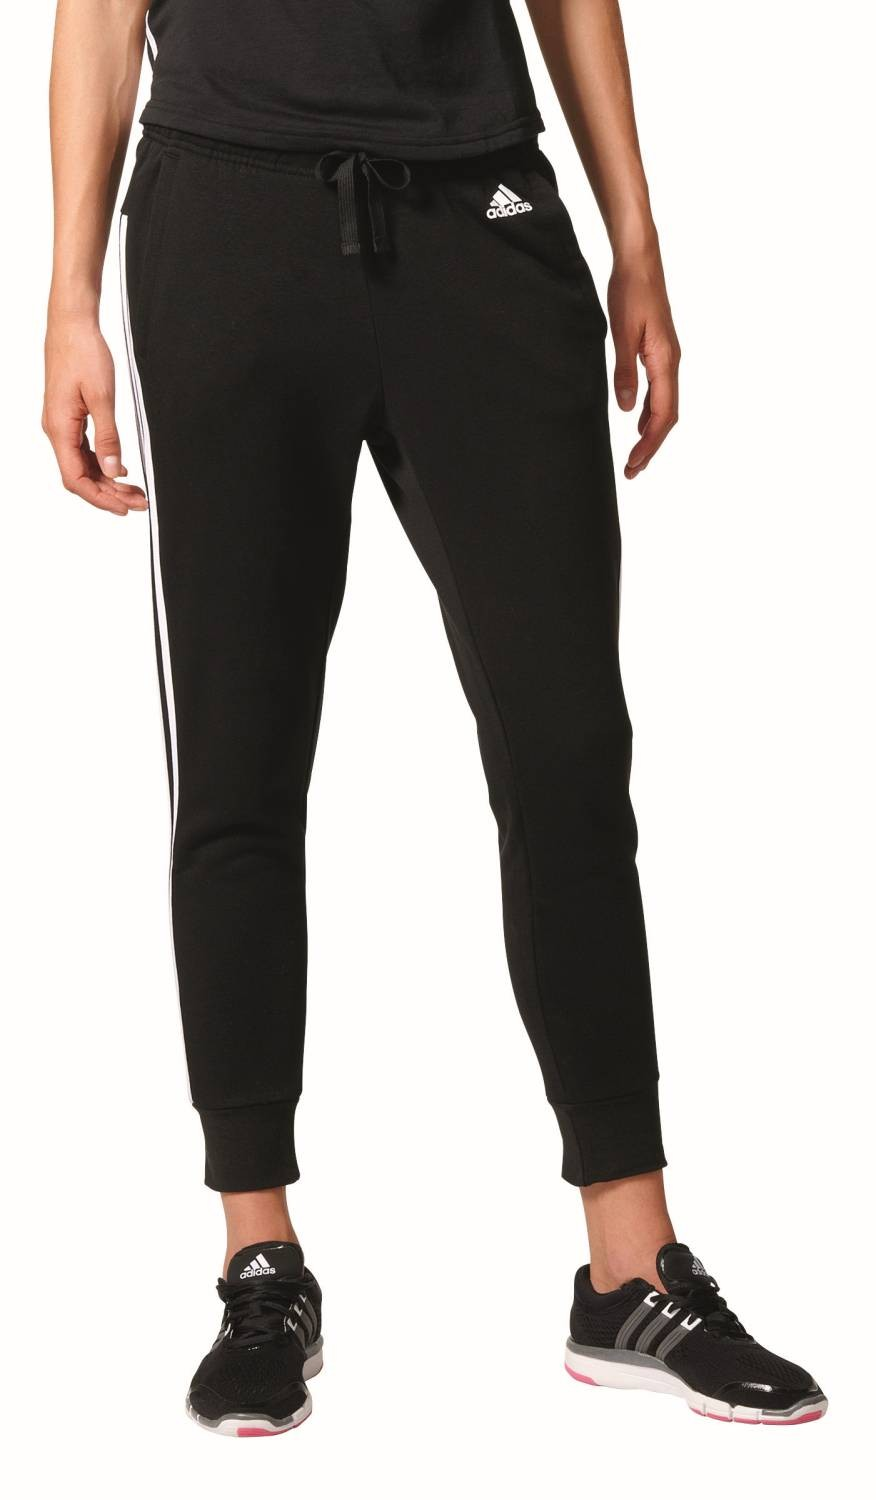 79d89b47891dfb adidas Performance Damen Trainingshose Essentials 3S Tapered Pant schwarz